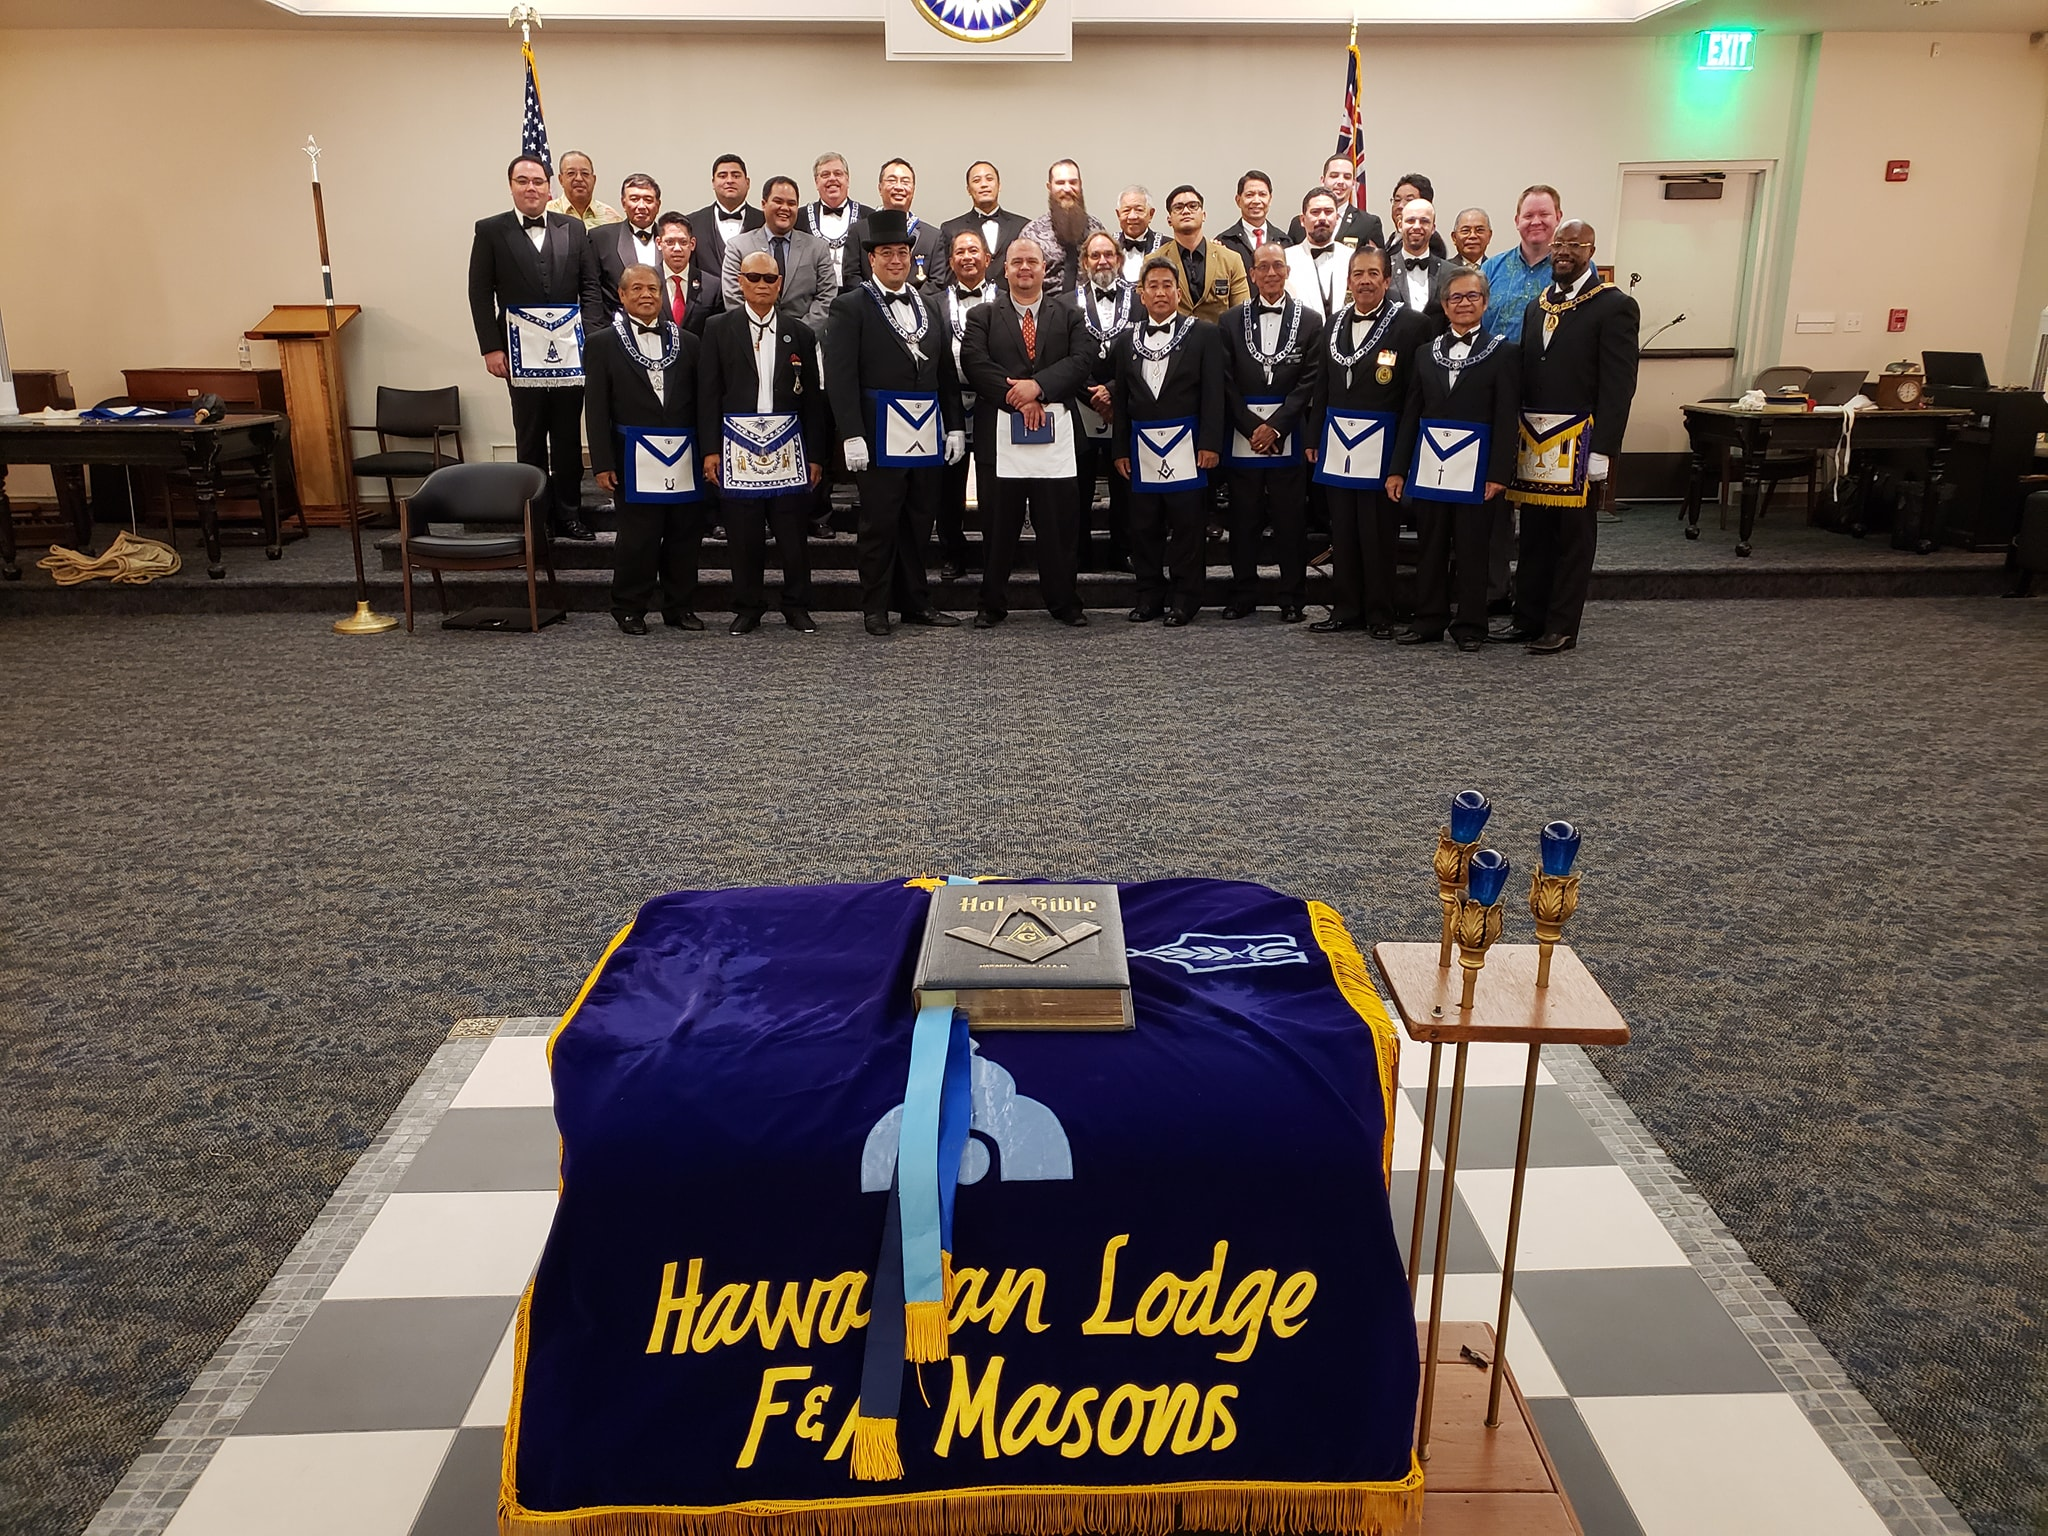 Hawaiian Lodge | F&AM – Hawaii Freemasonry – 3rd Degree